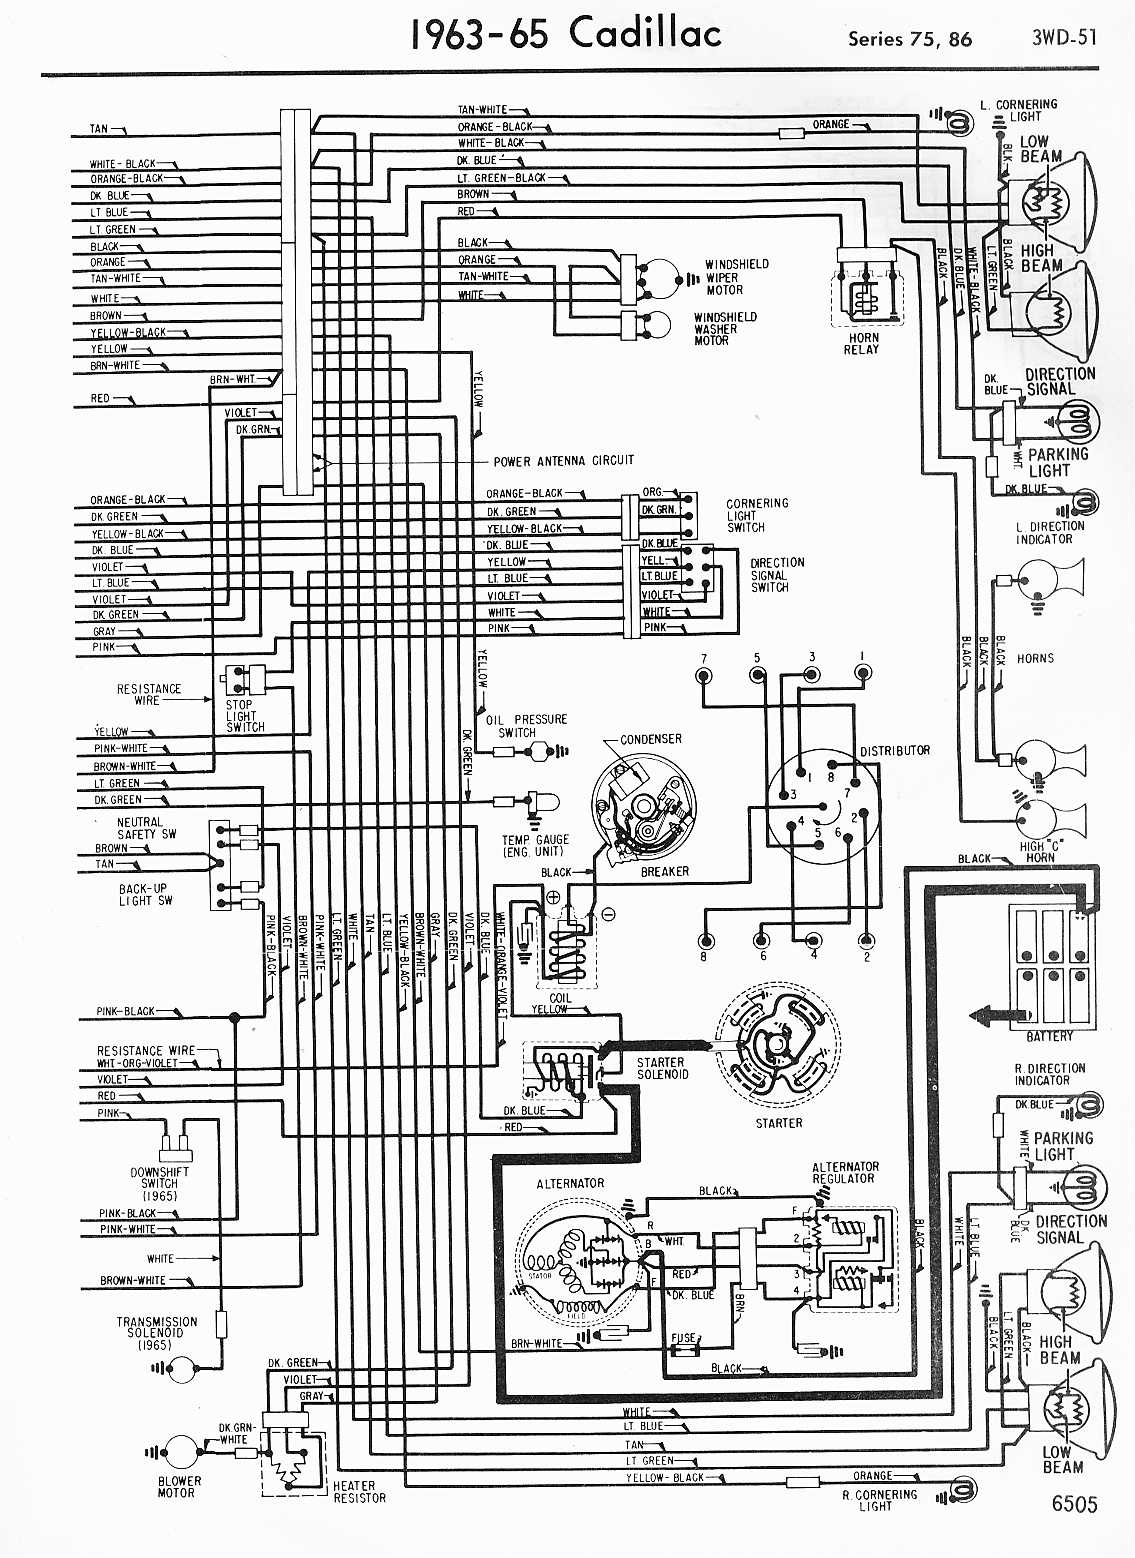 MWireCadi65_3WD 051 cadillac wiring diagrams 1957 1965 1957 plymouth wiring harness at nearapp.co